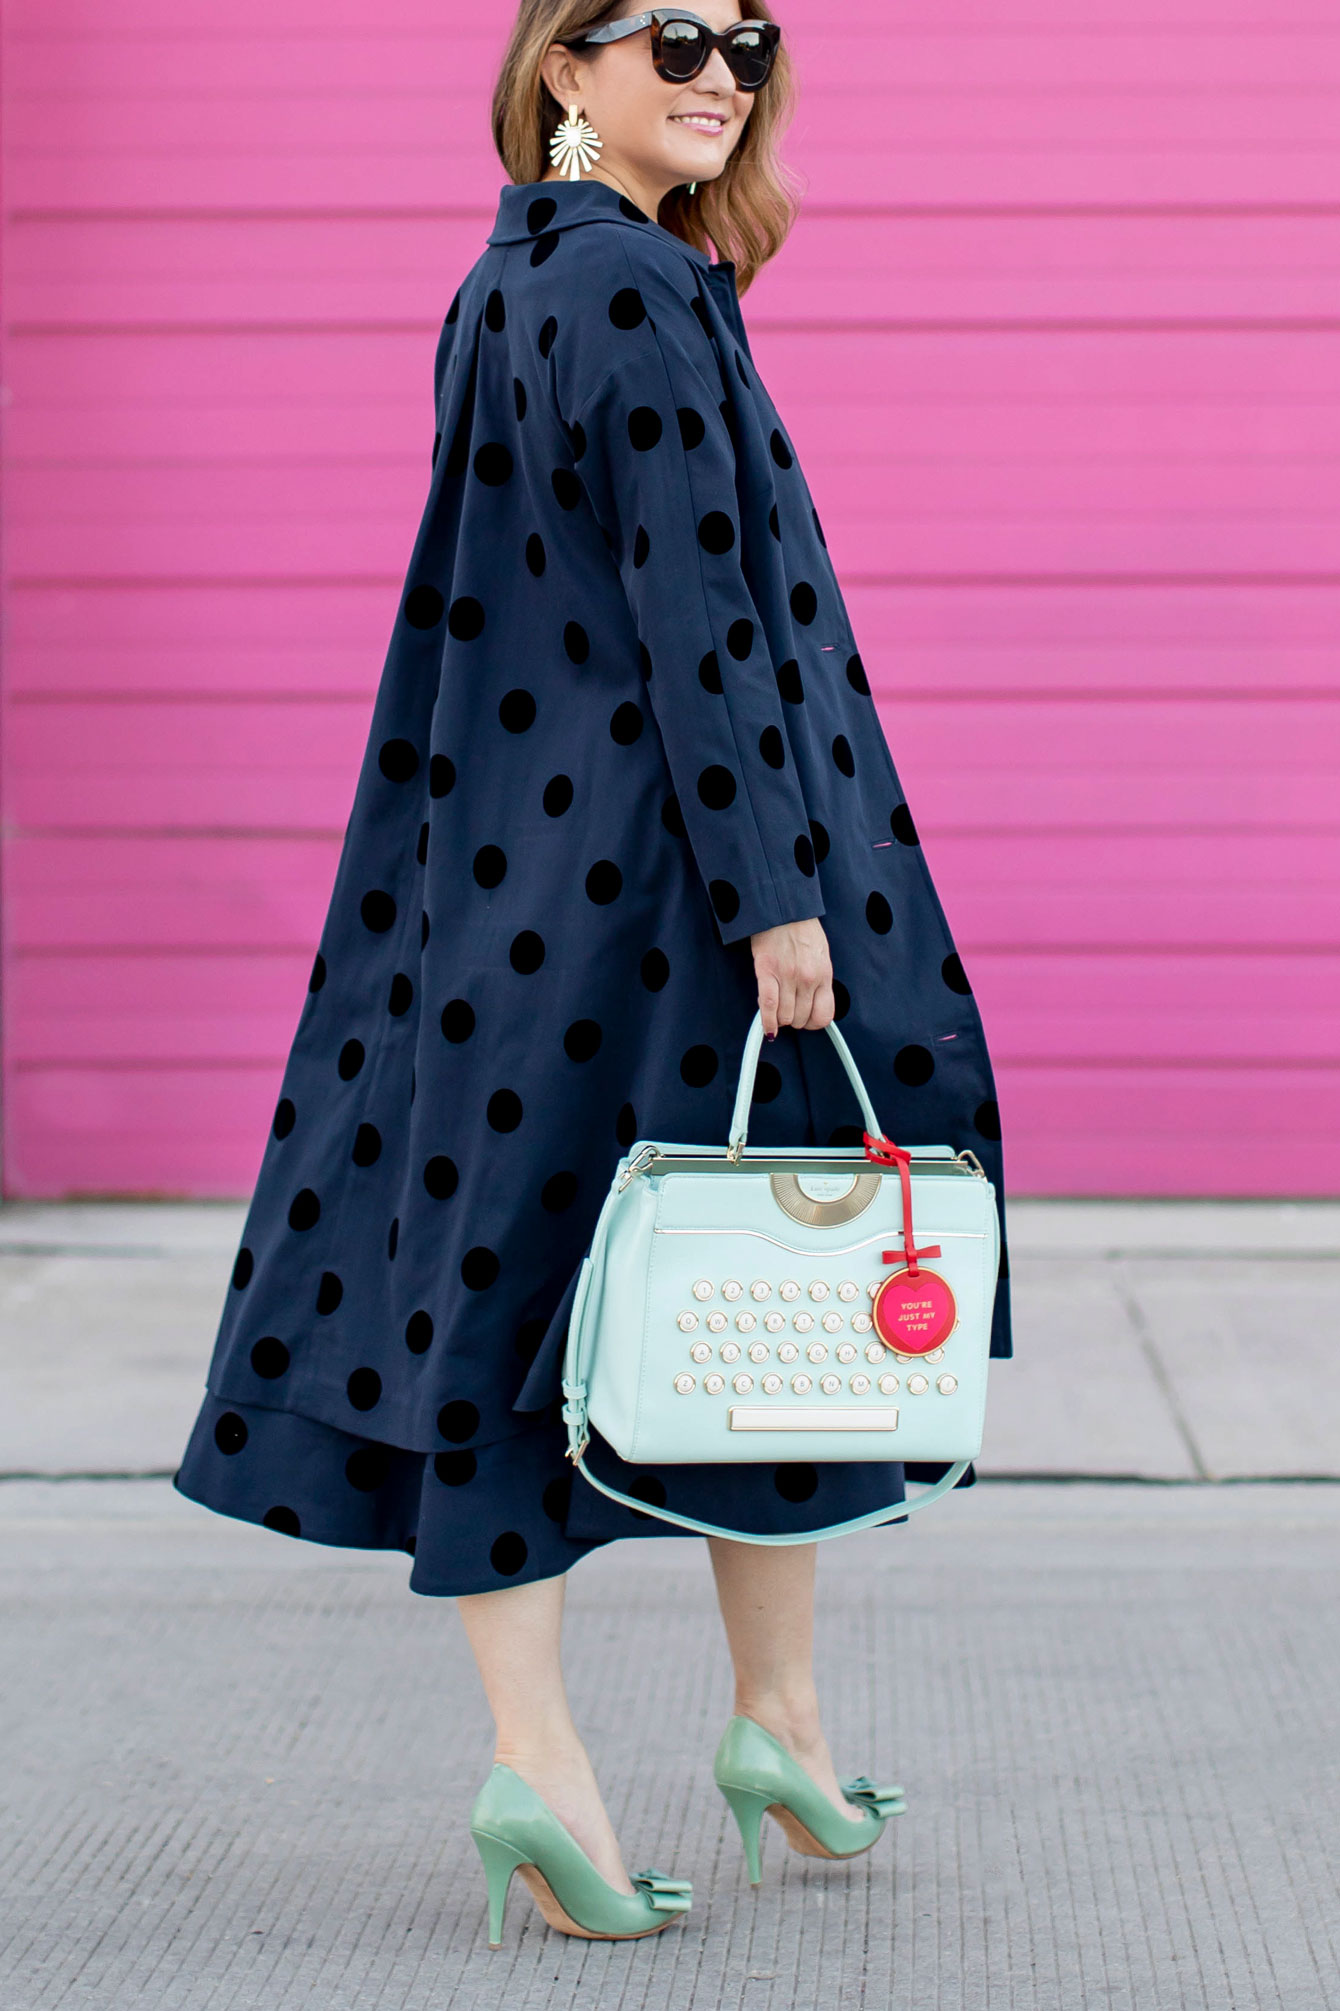 Navy Polka Dot Topcoat